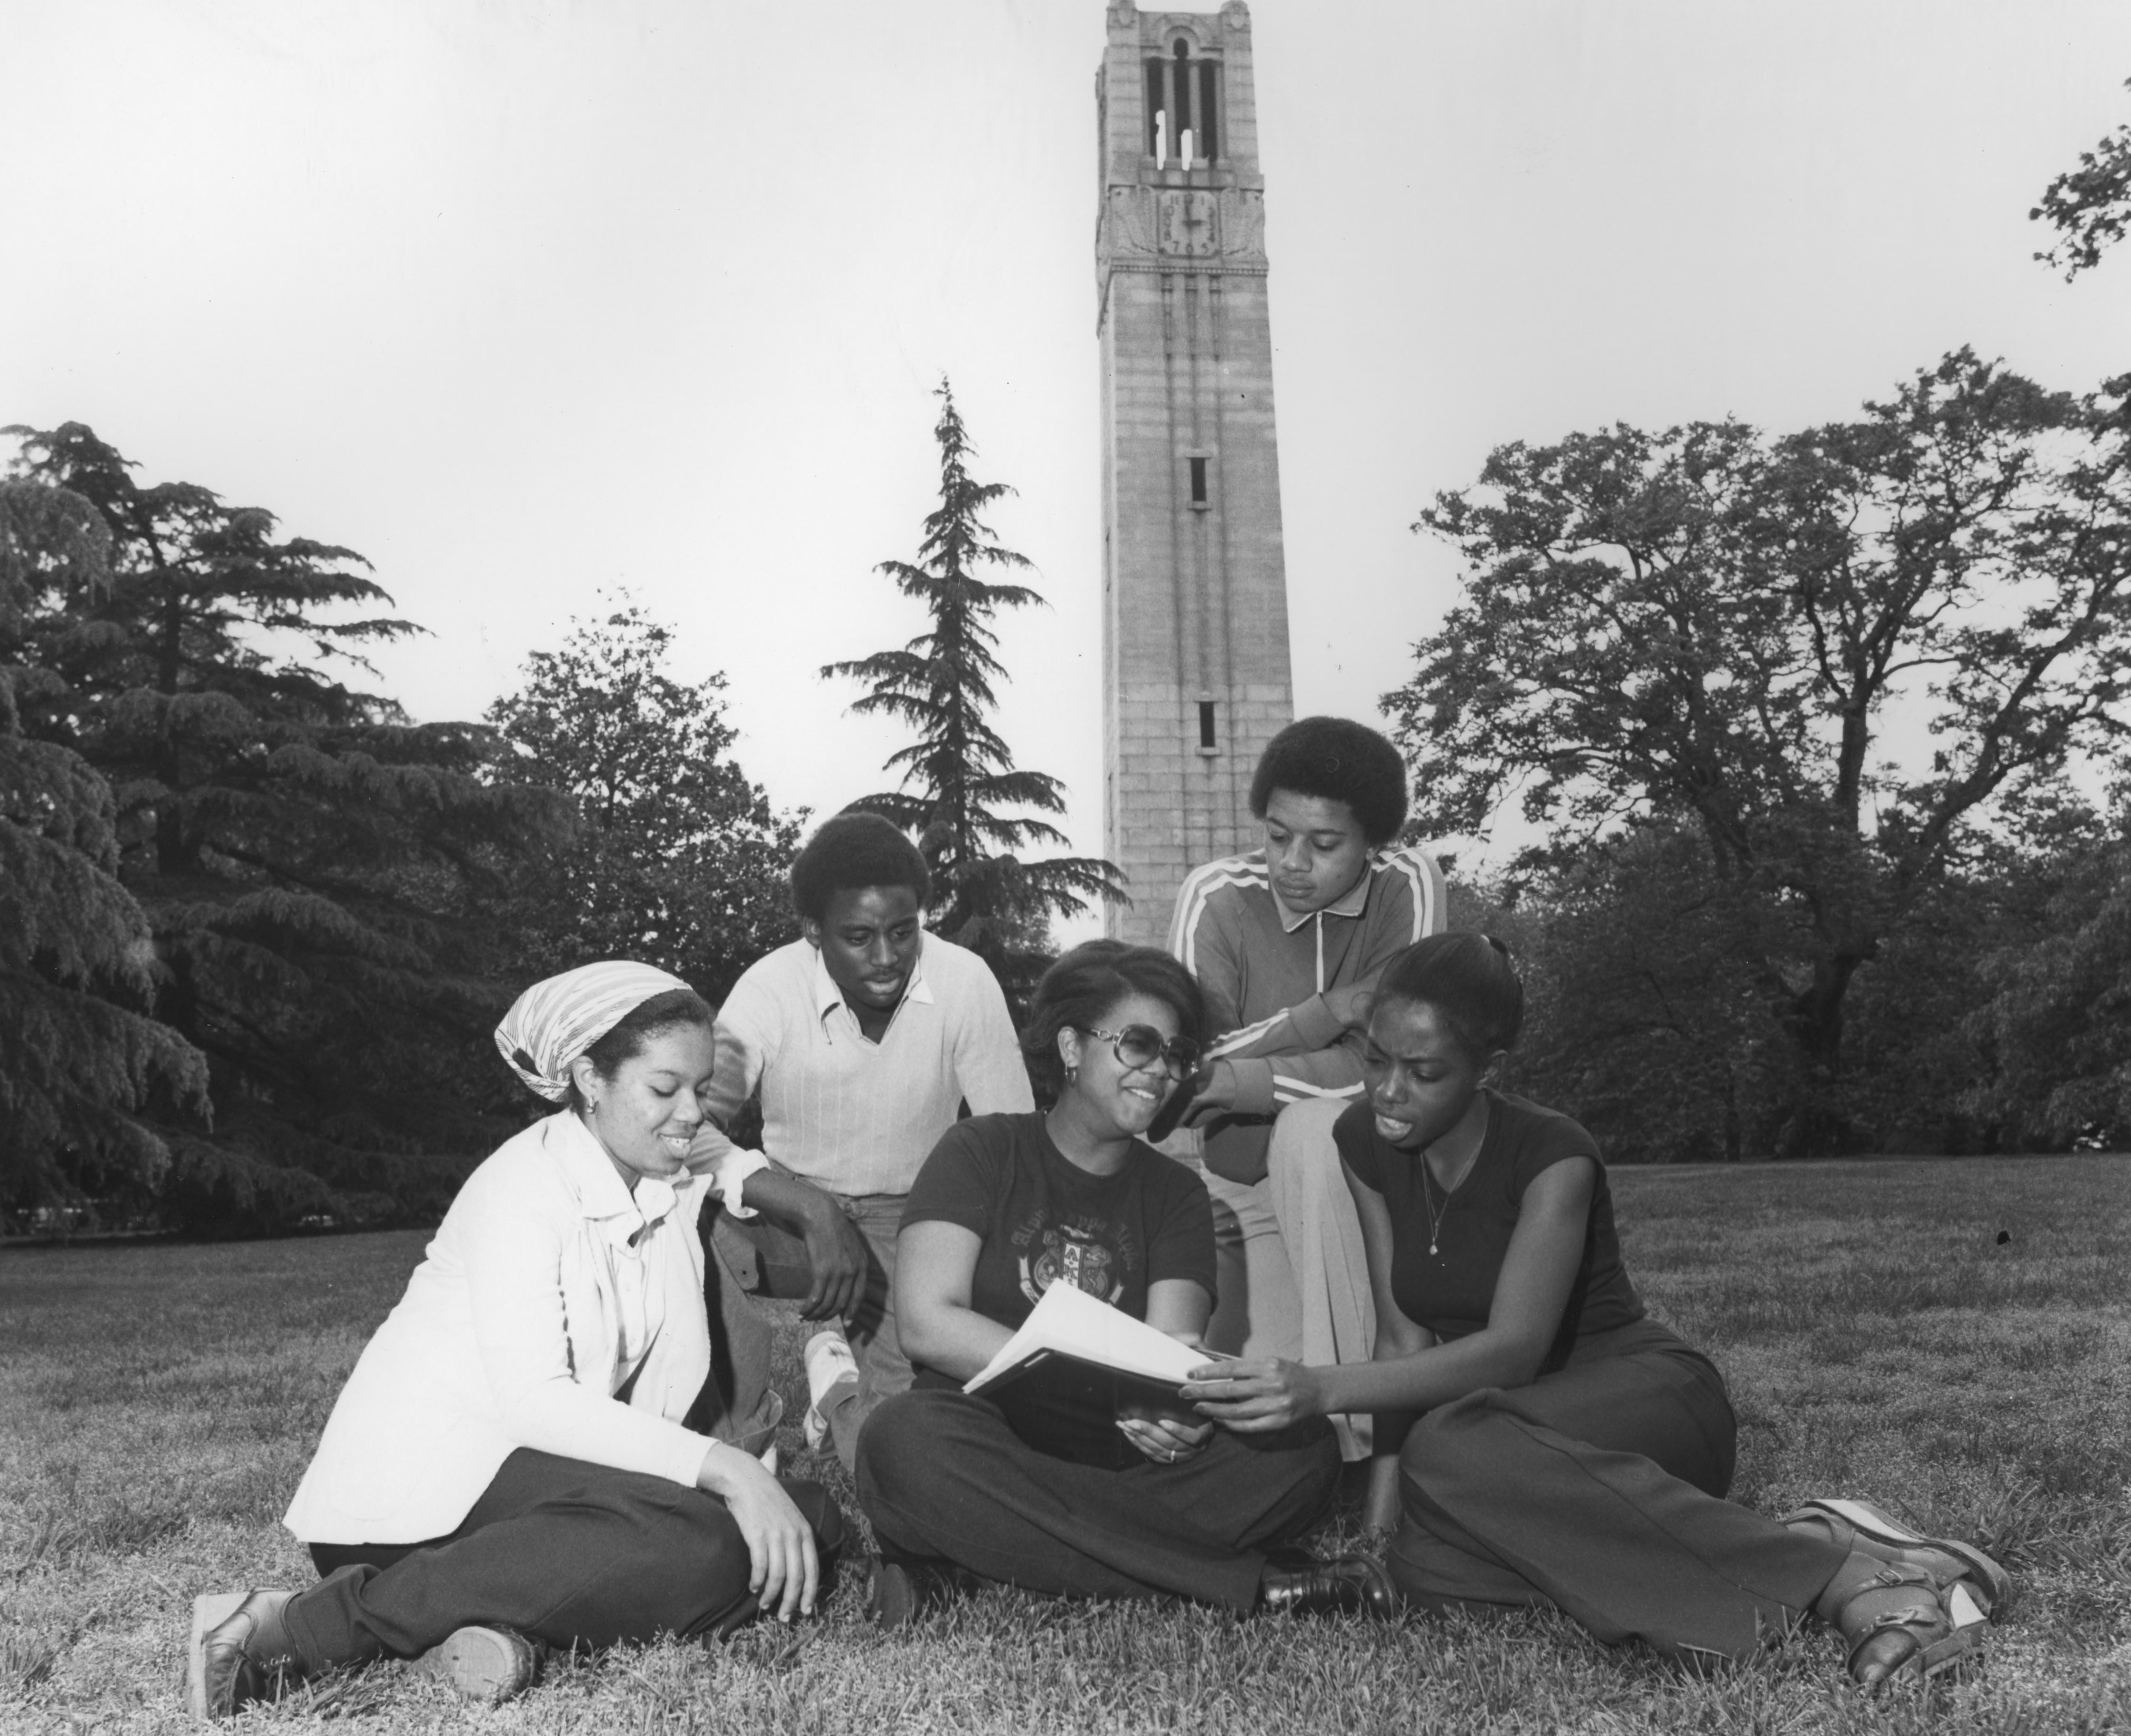 Five students in front of Memorial Bell Tower